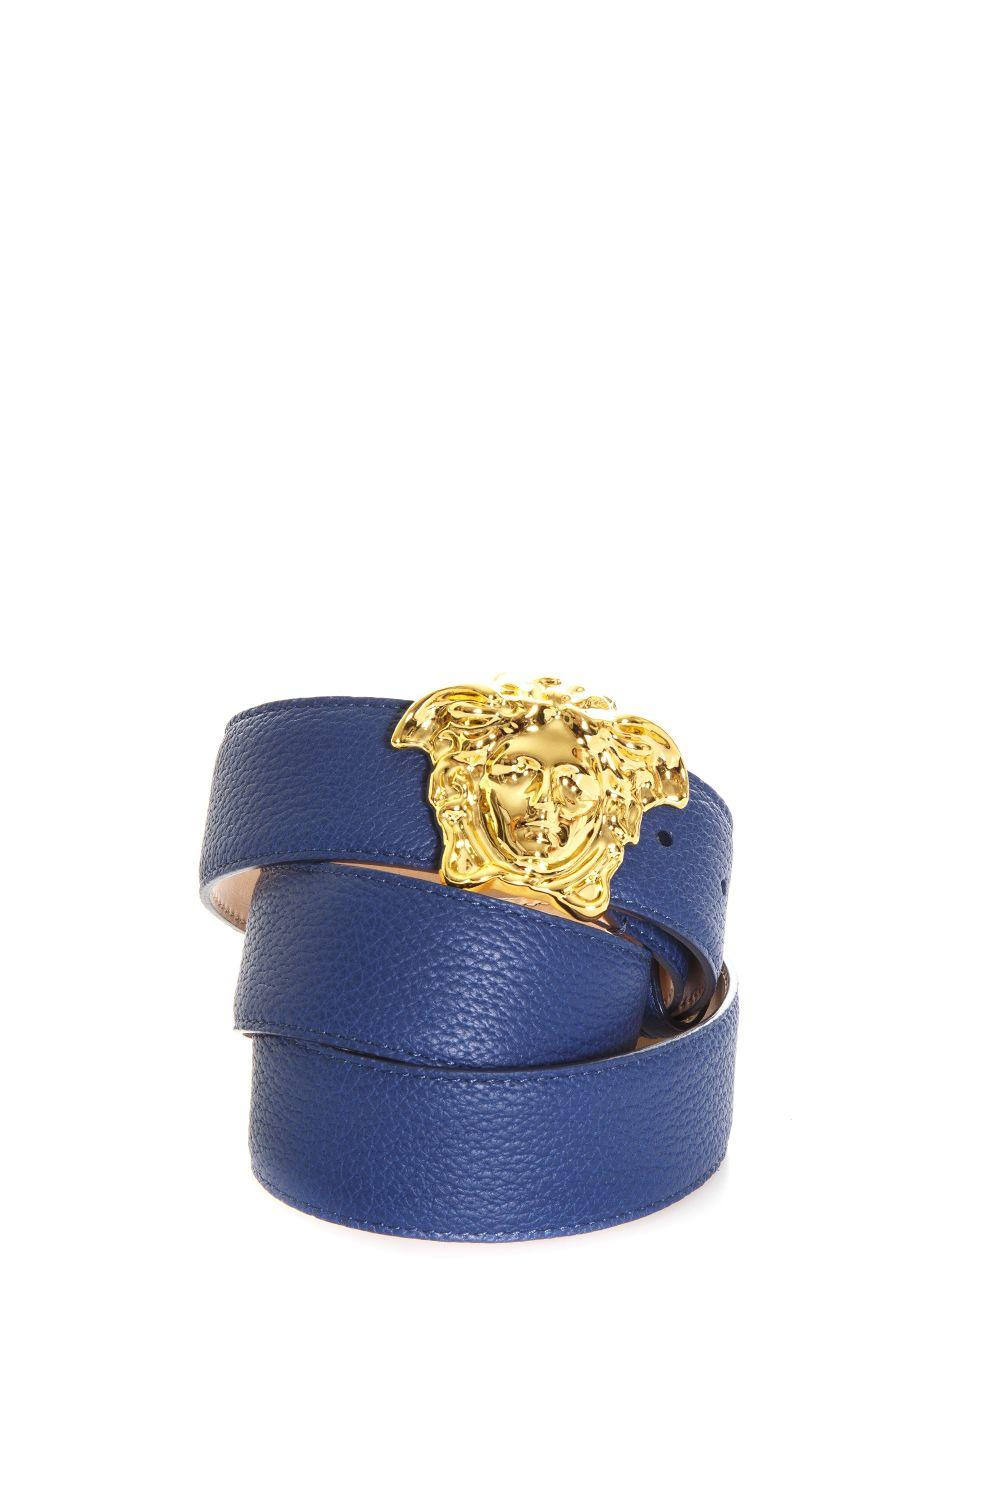 Versace Palazzo Calf Leather Belt In Blue-Gold